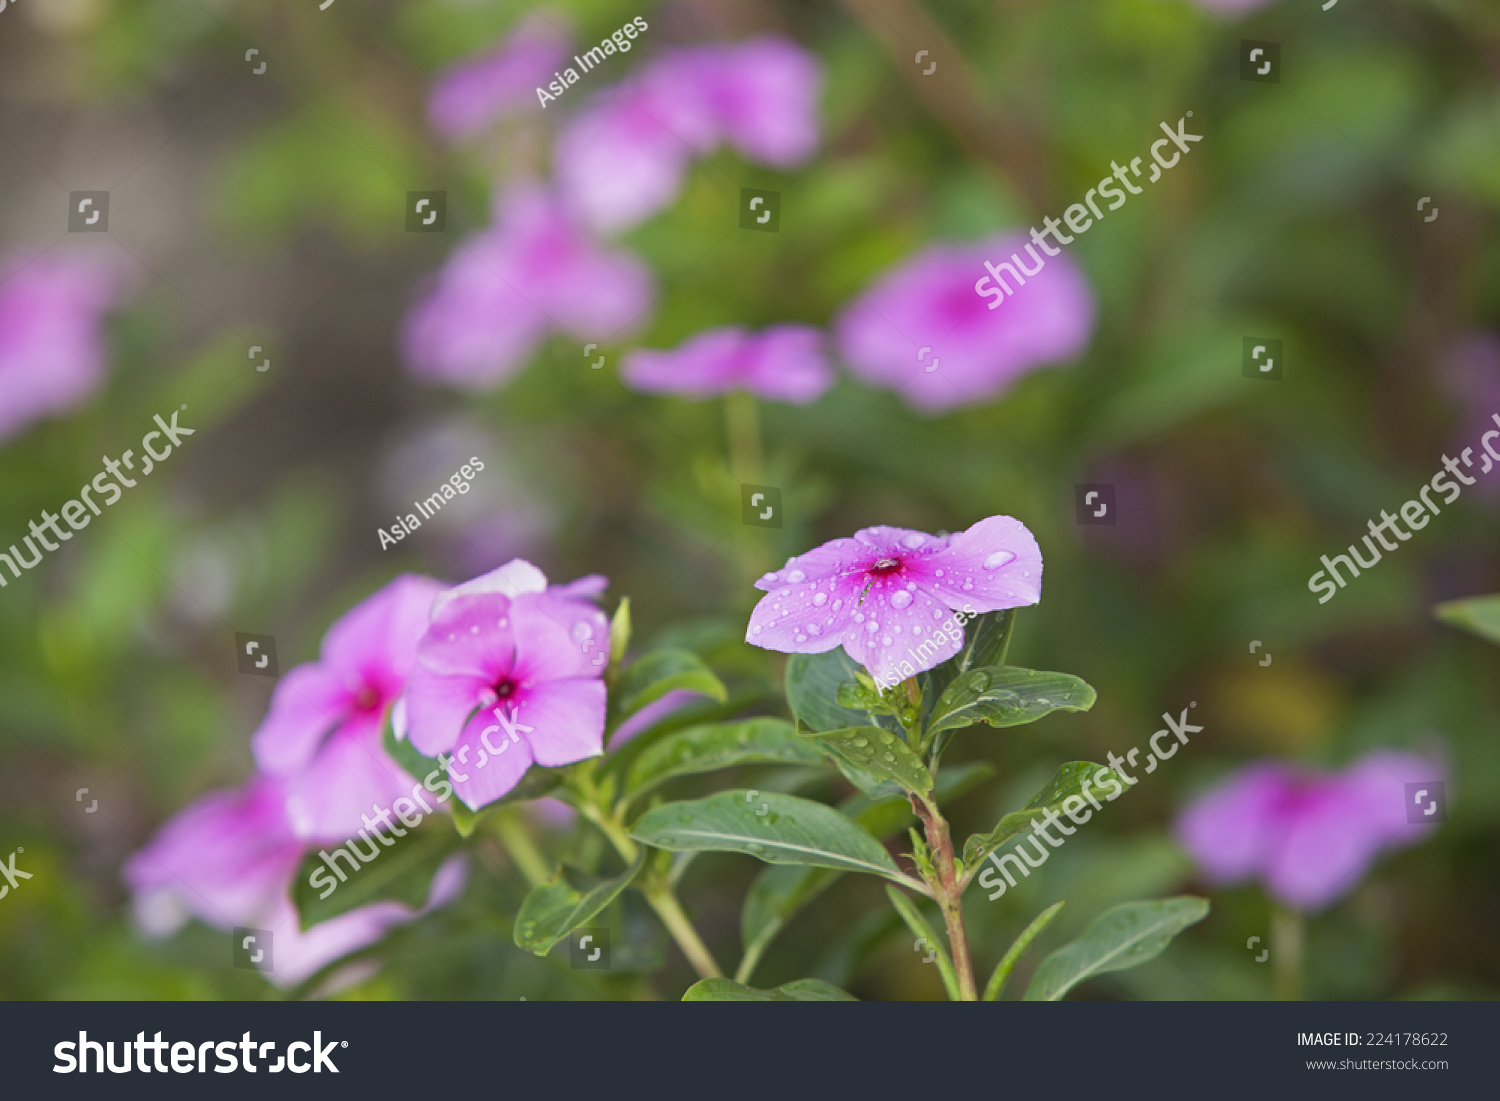 Periwinkle Or Madagascar Rosy Periwinkle Or Cape Periwinkle Or Rose